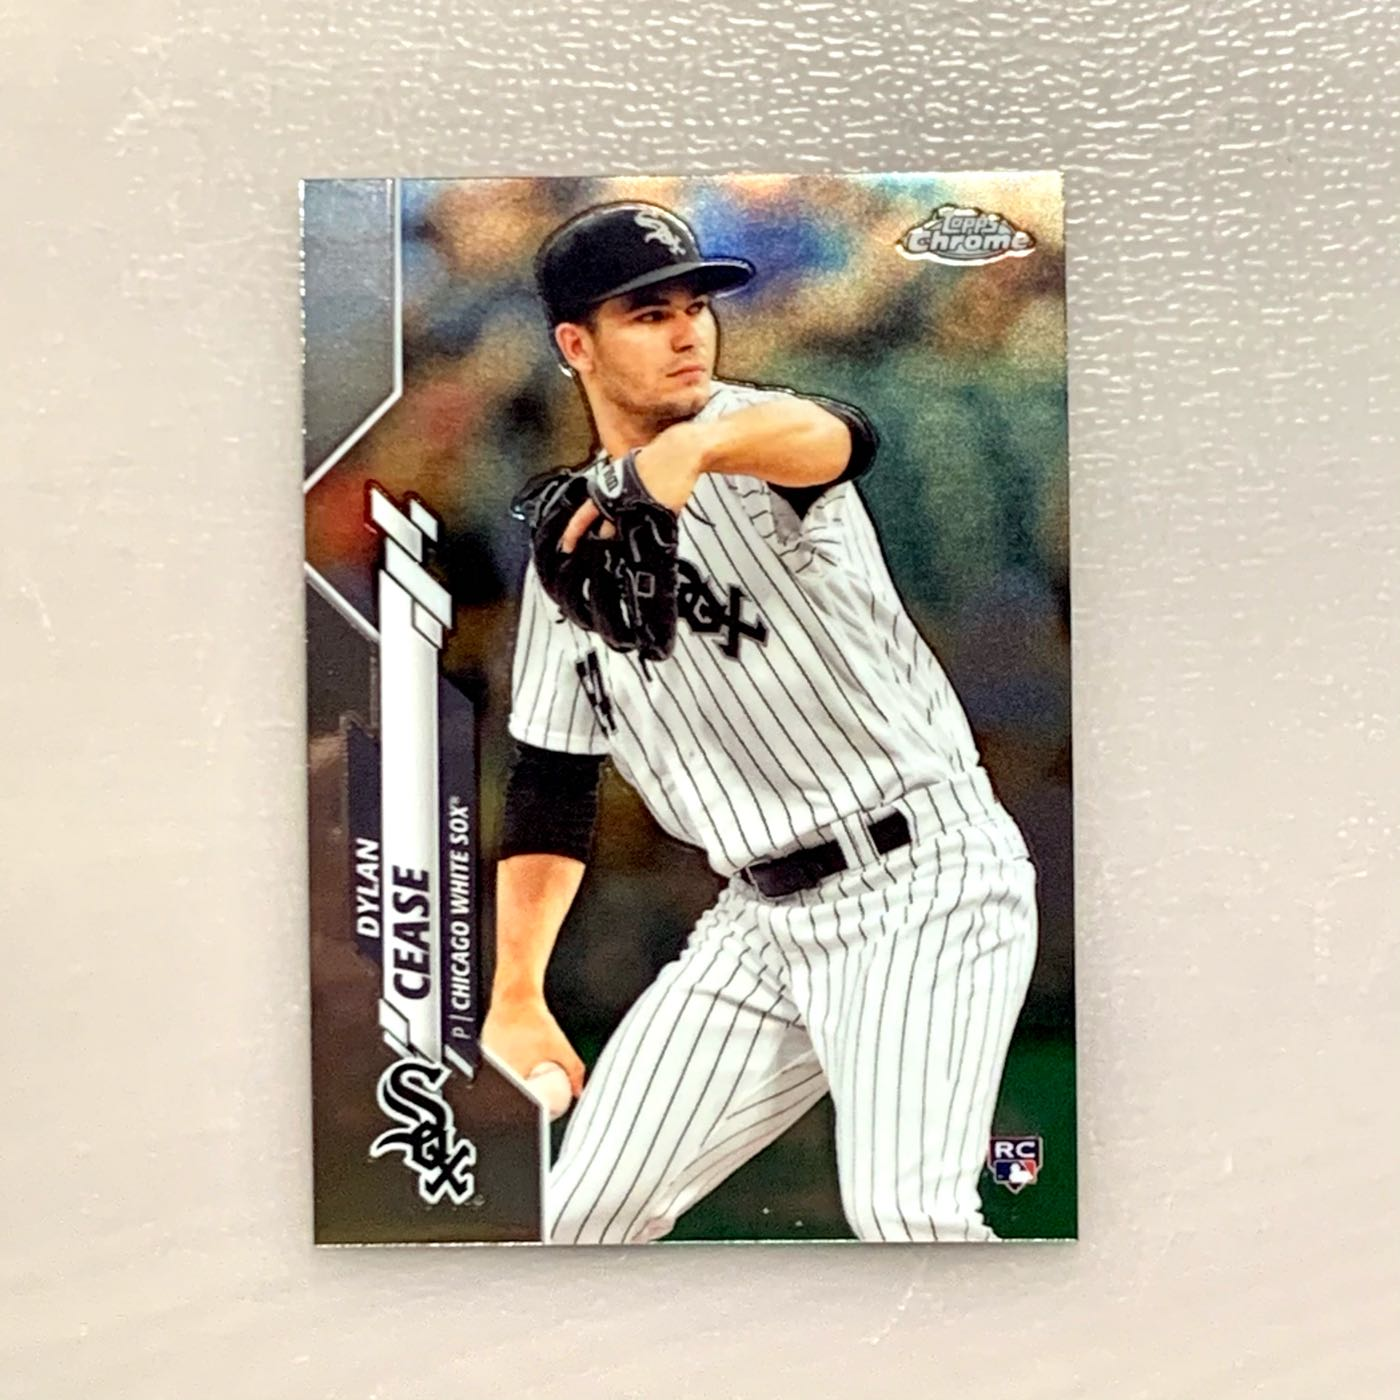 2020 Topps Chrome Dylan Cease RC。芝加哥白襪